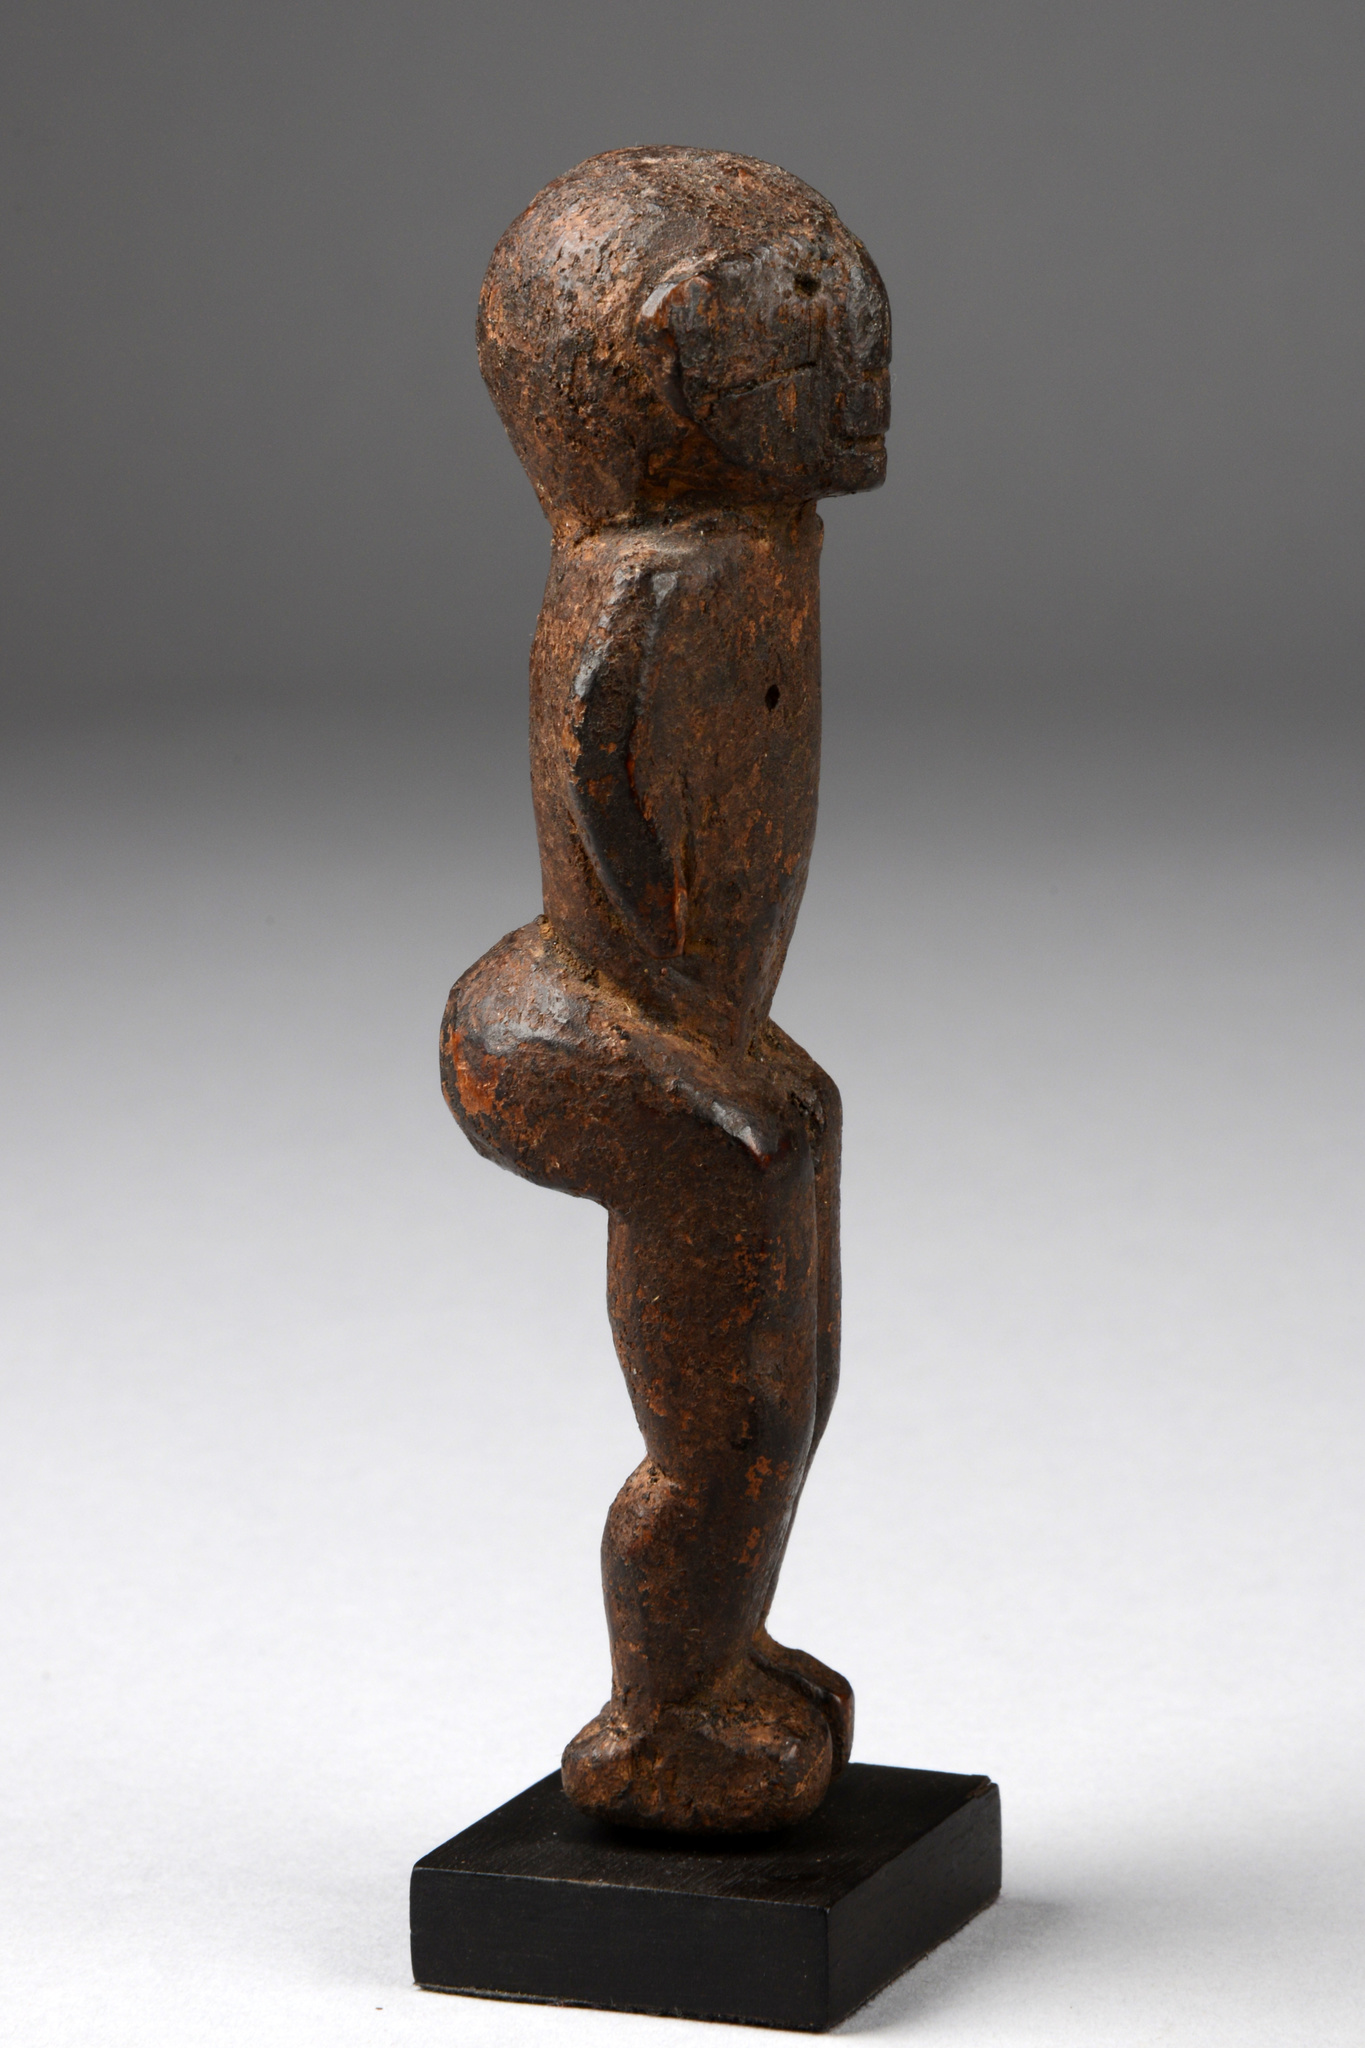 Small standing figure